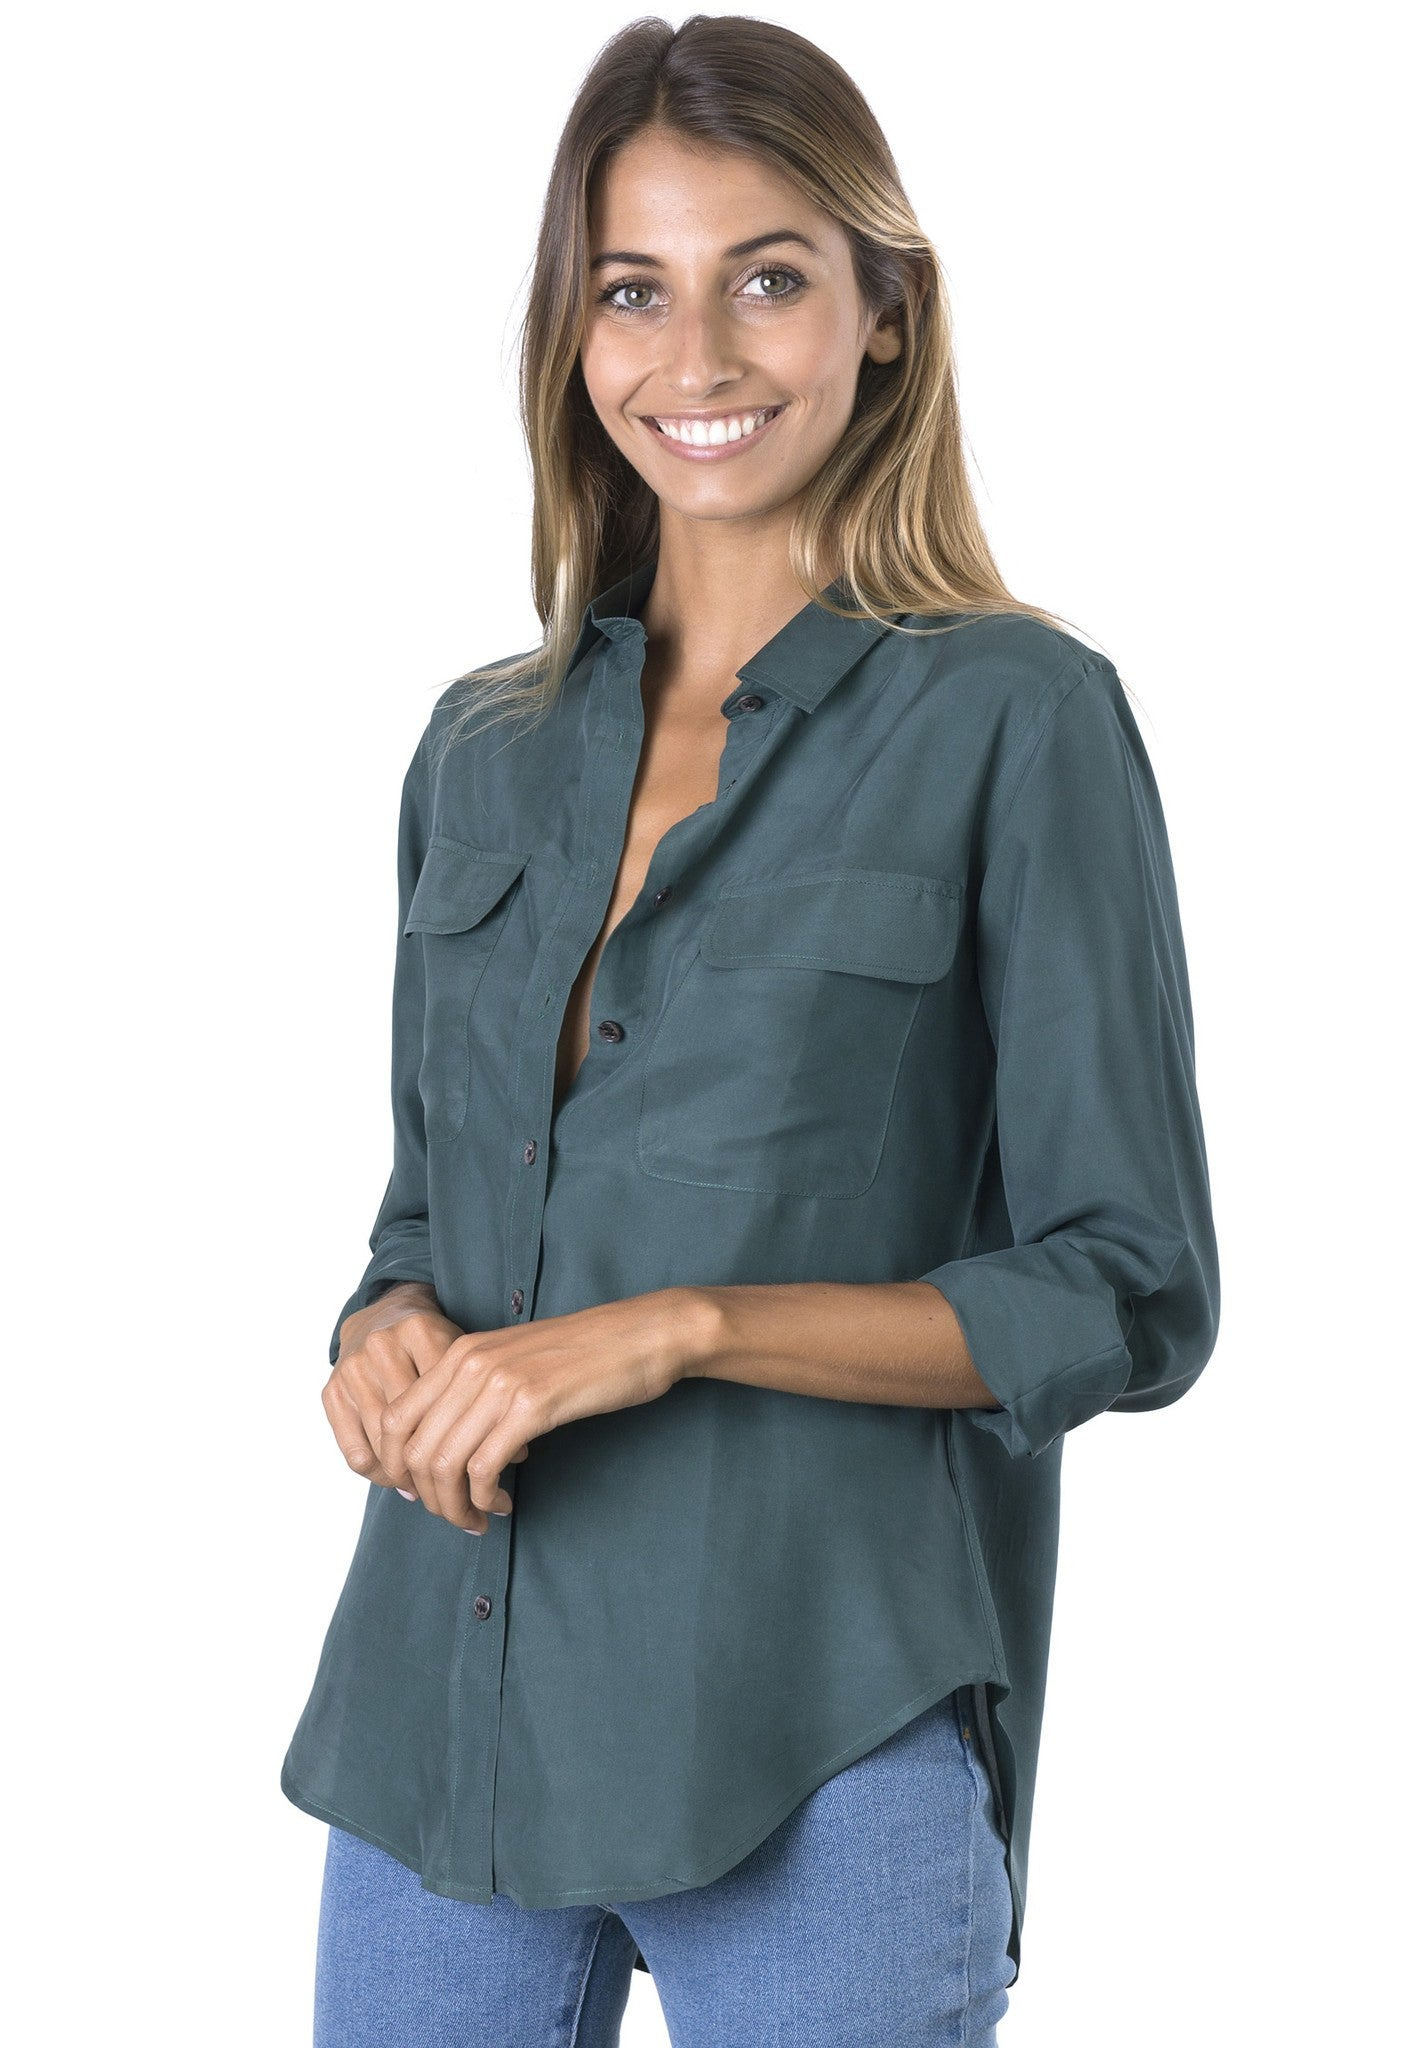 Lete Silk Petrol, Sand-washed shirt with pockets